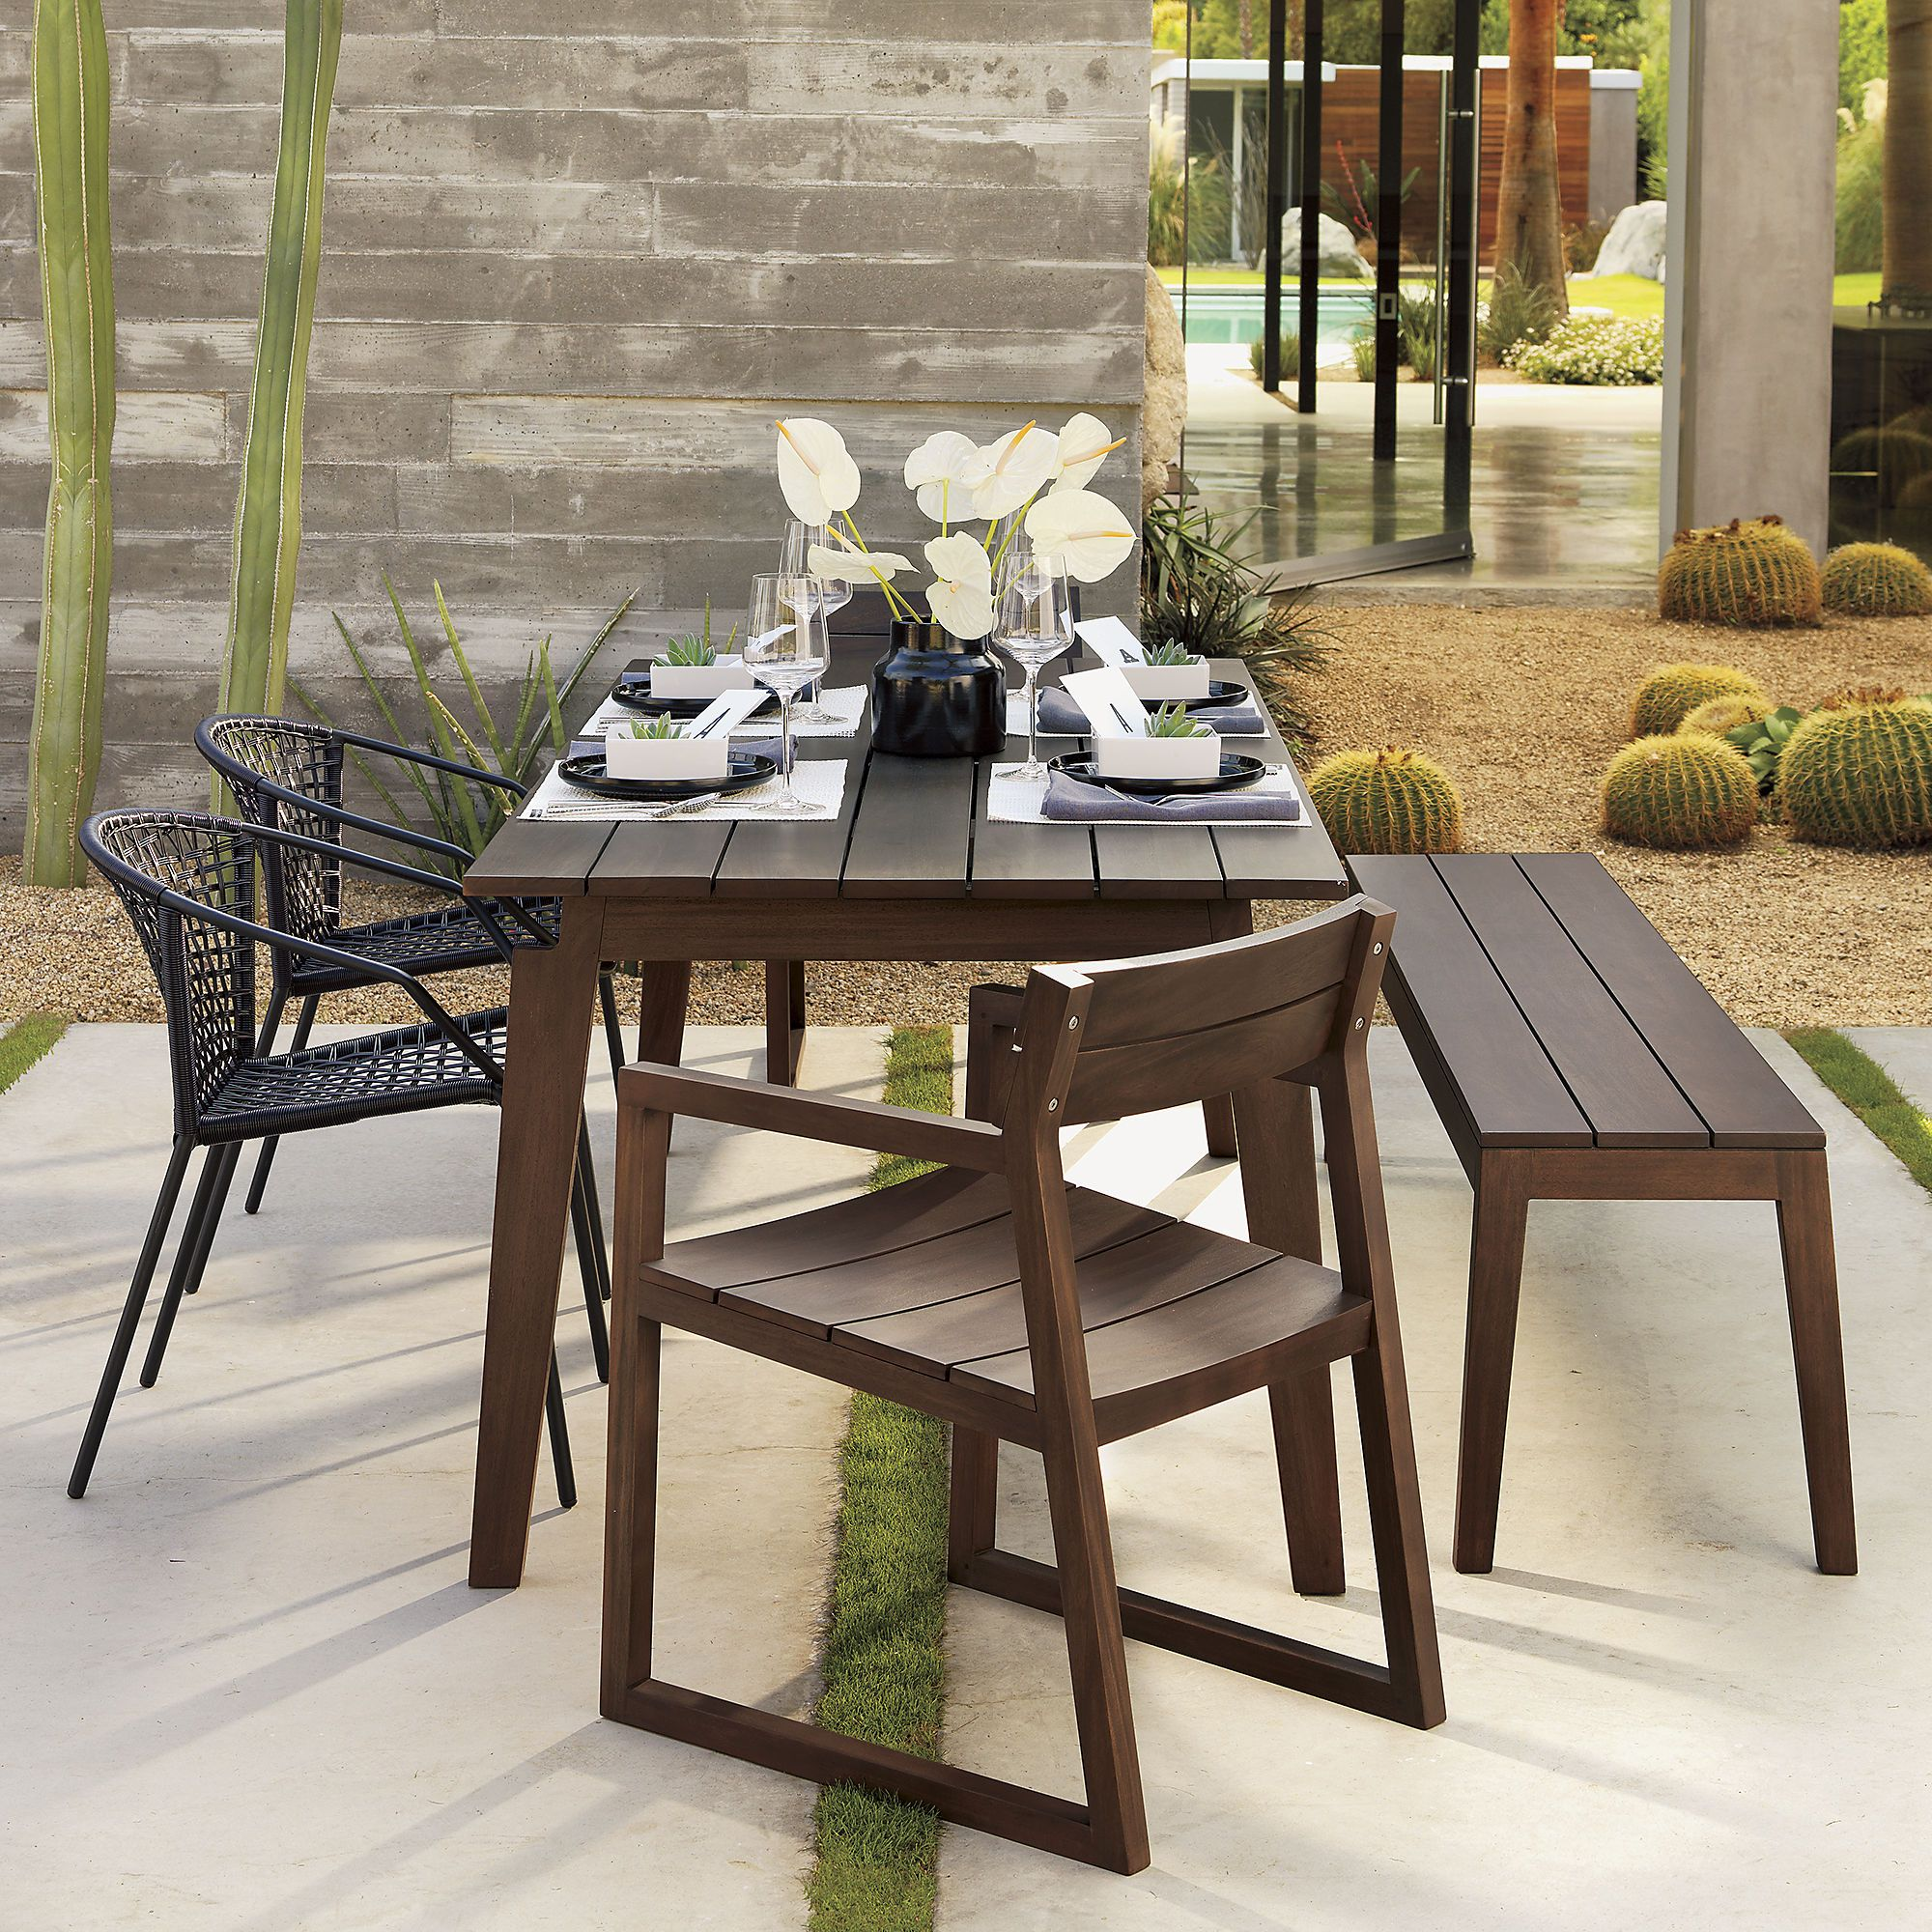 cb2 outdoor furniture. Sophia Black Dining Chair | CB2 Cb2 Outdoor Furniture U